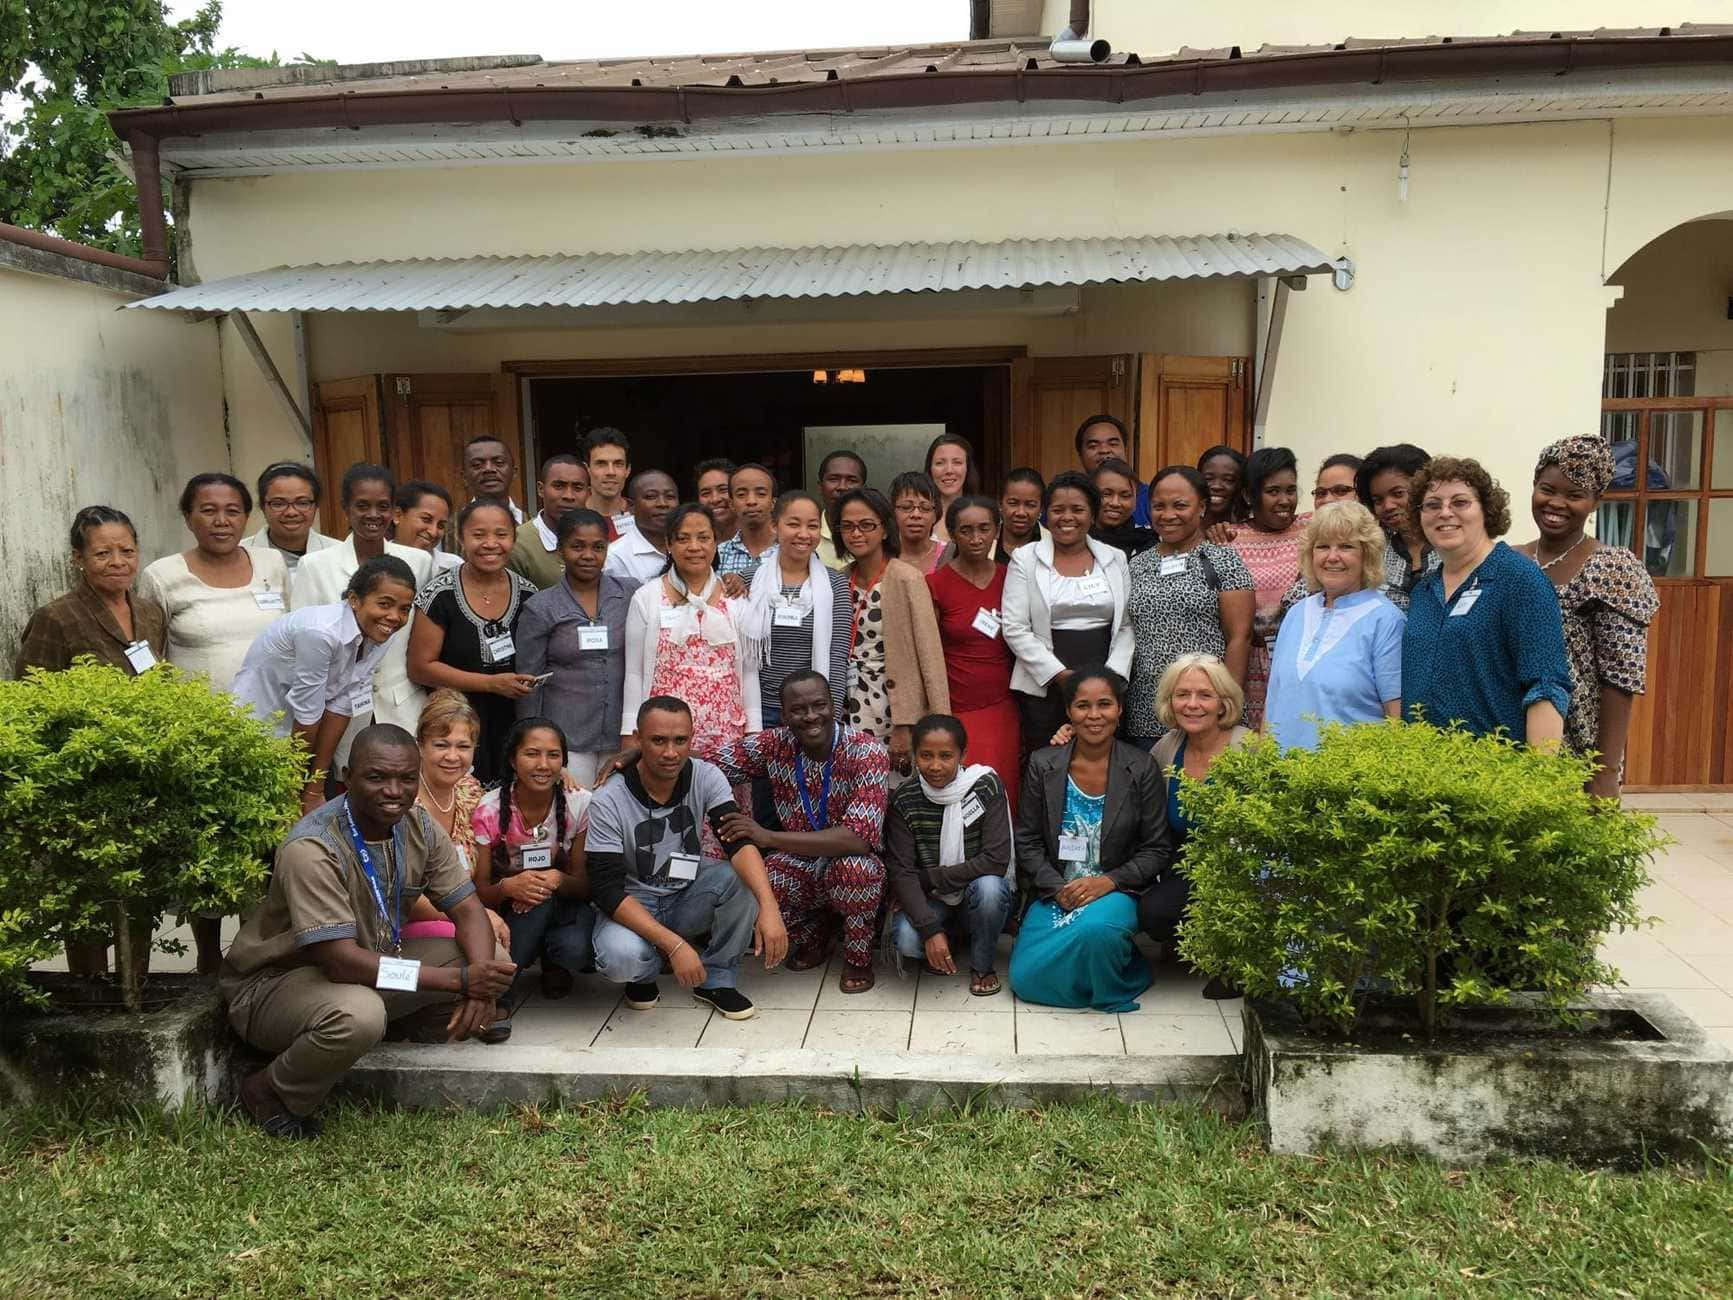 Group photo - participants in Madagascar